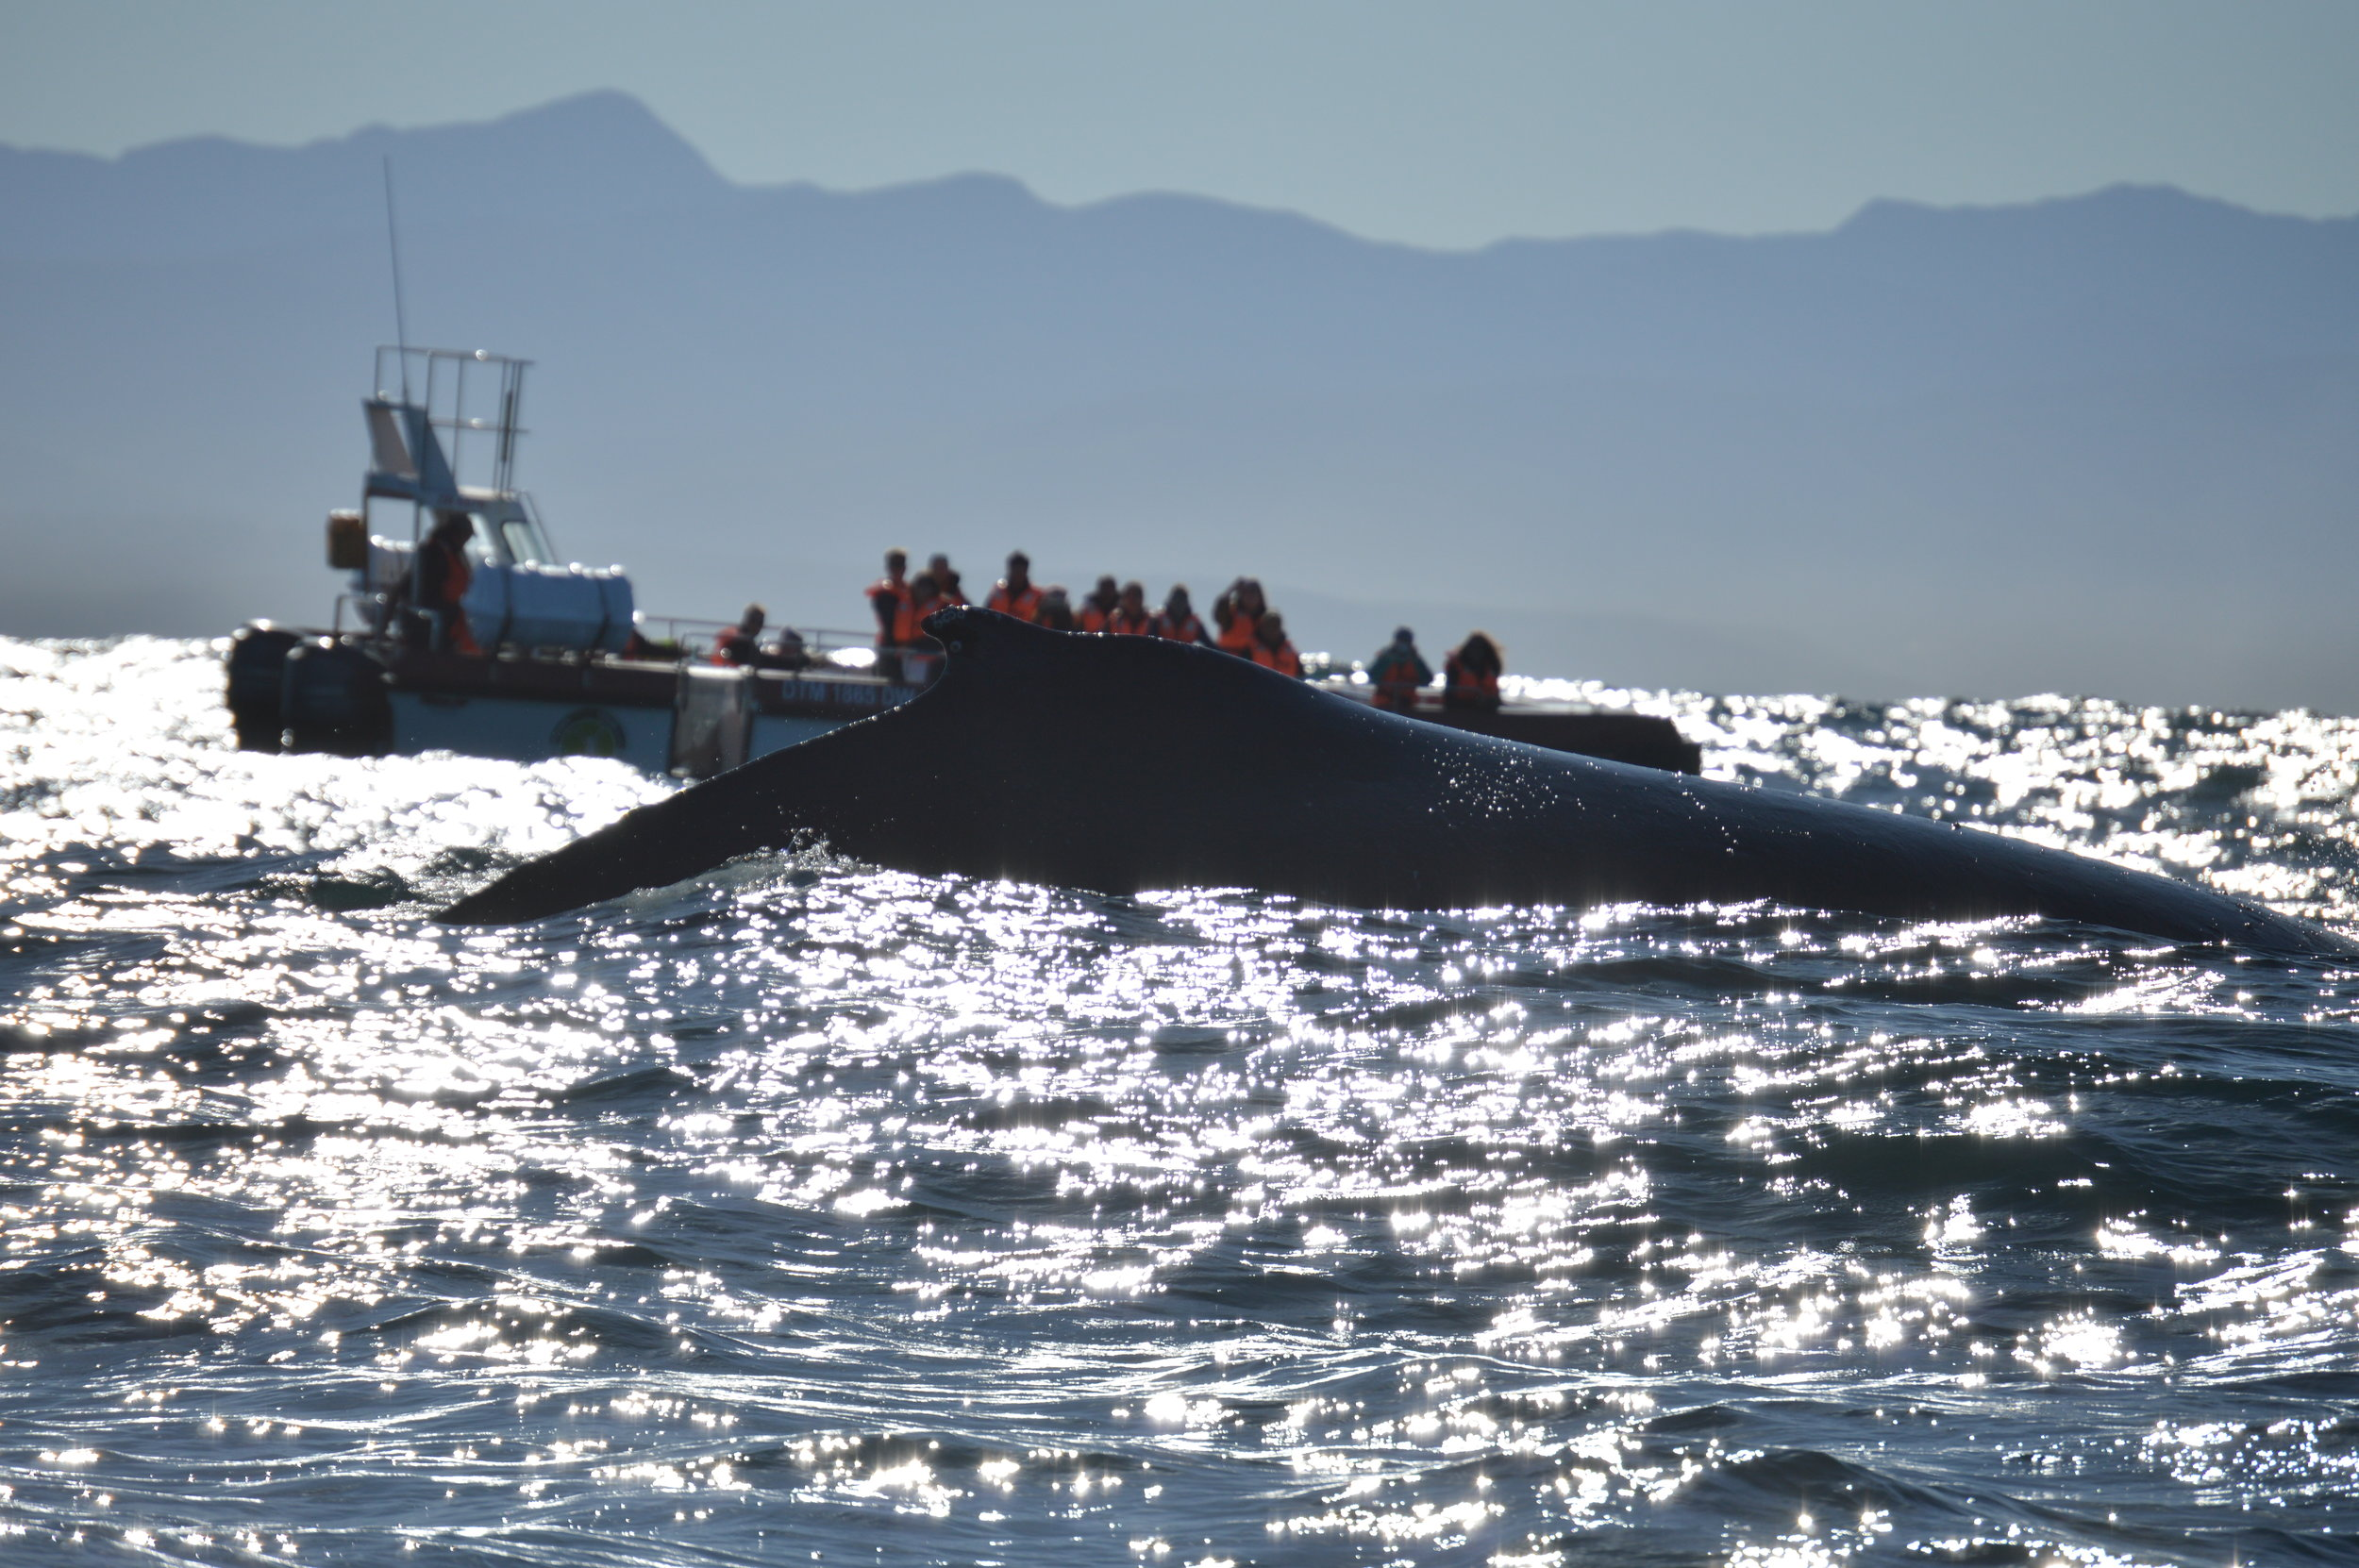 Whale watching in Plettenberg Bay. Photo: Sally Sivewright